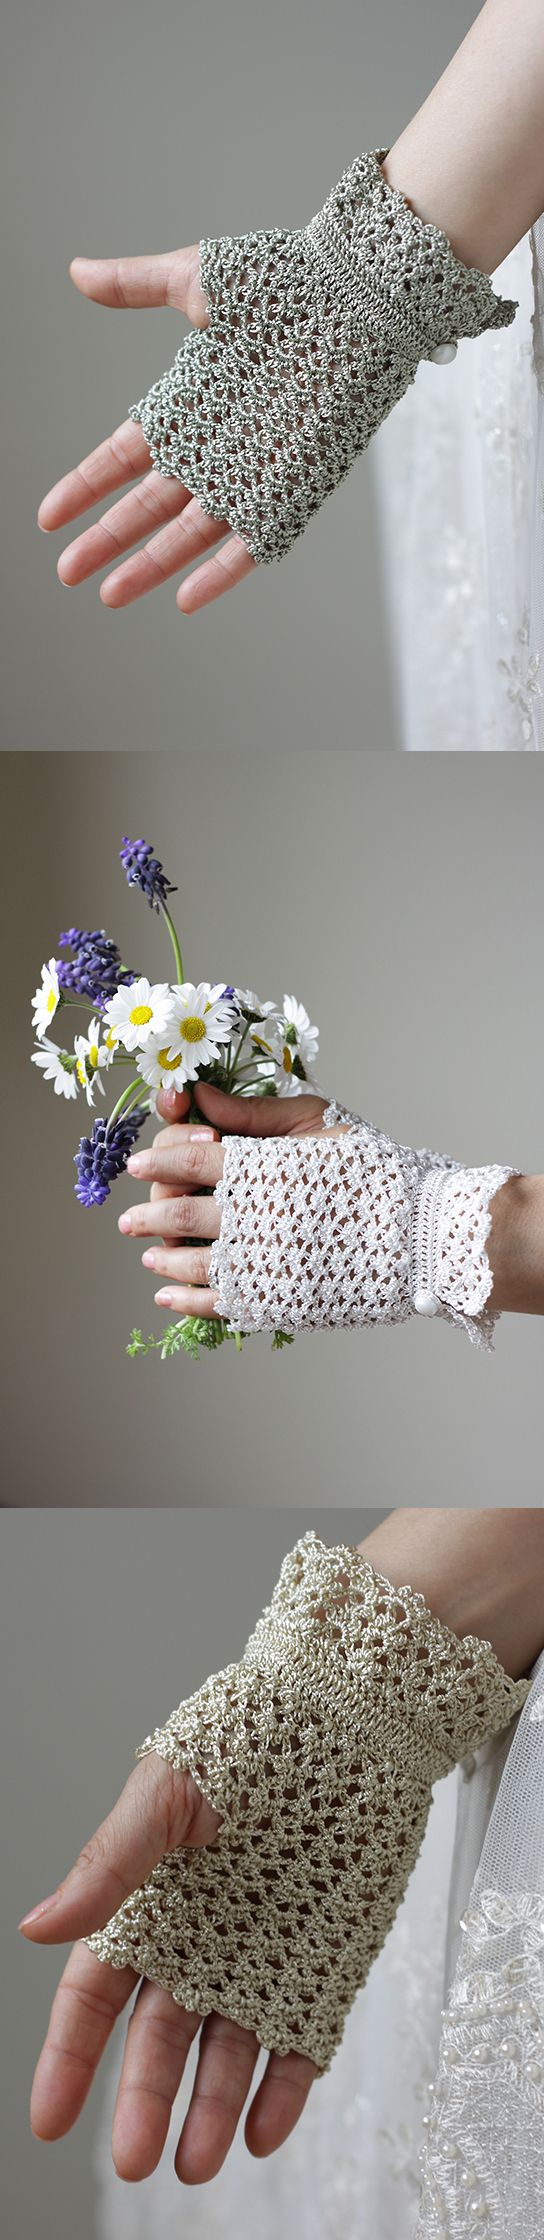 CROCHET GLOVES  //  ***MUST FIND THIS PATTERN!!!  ♥A